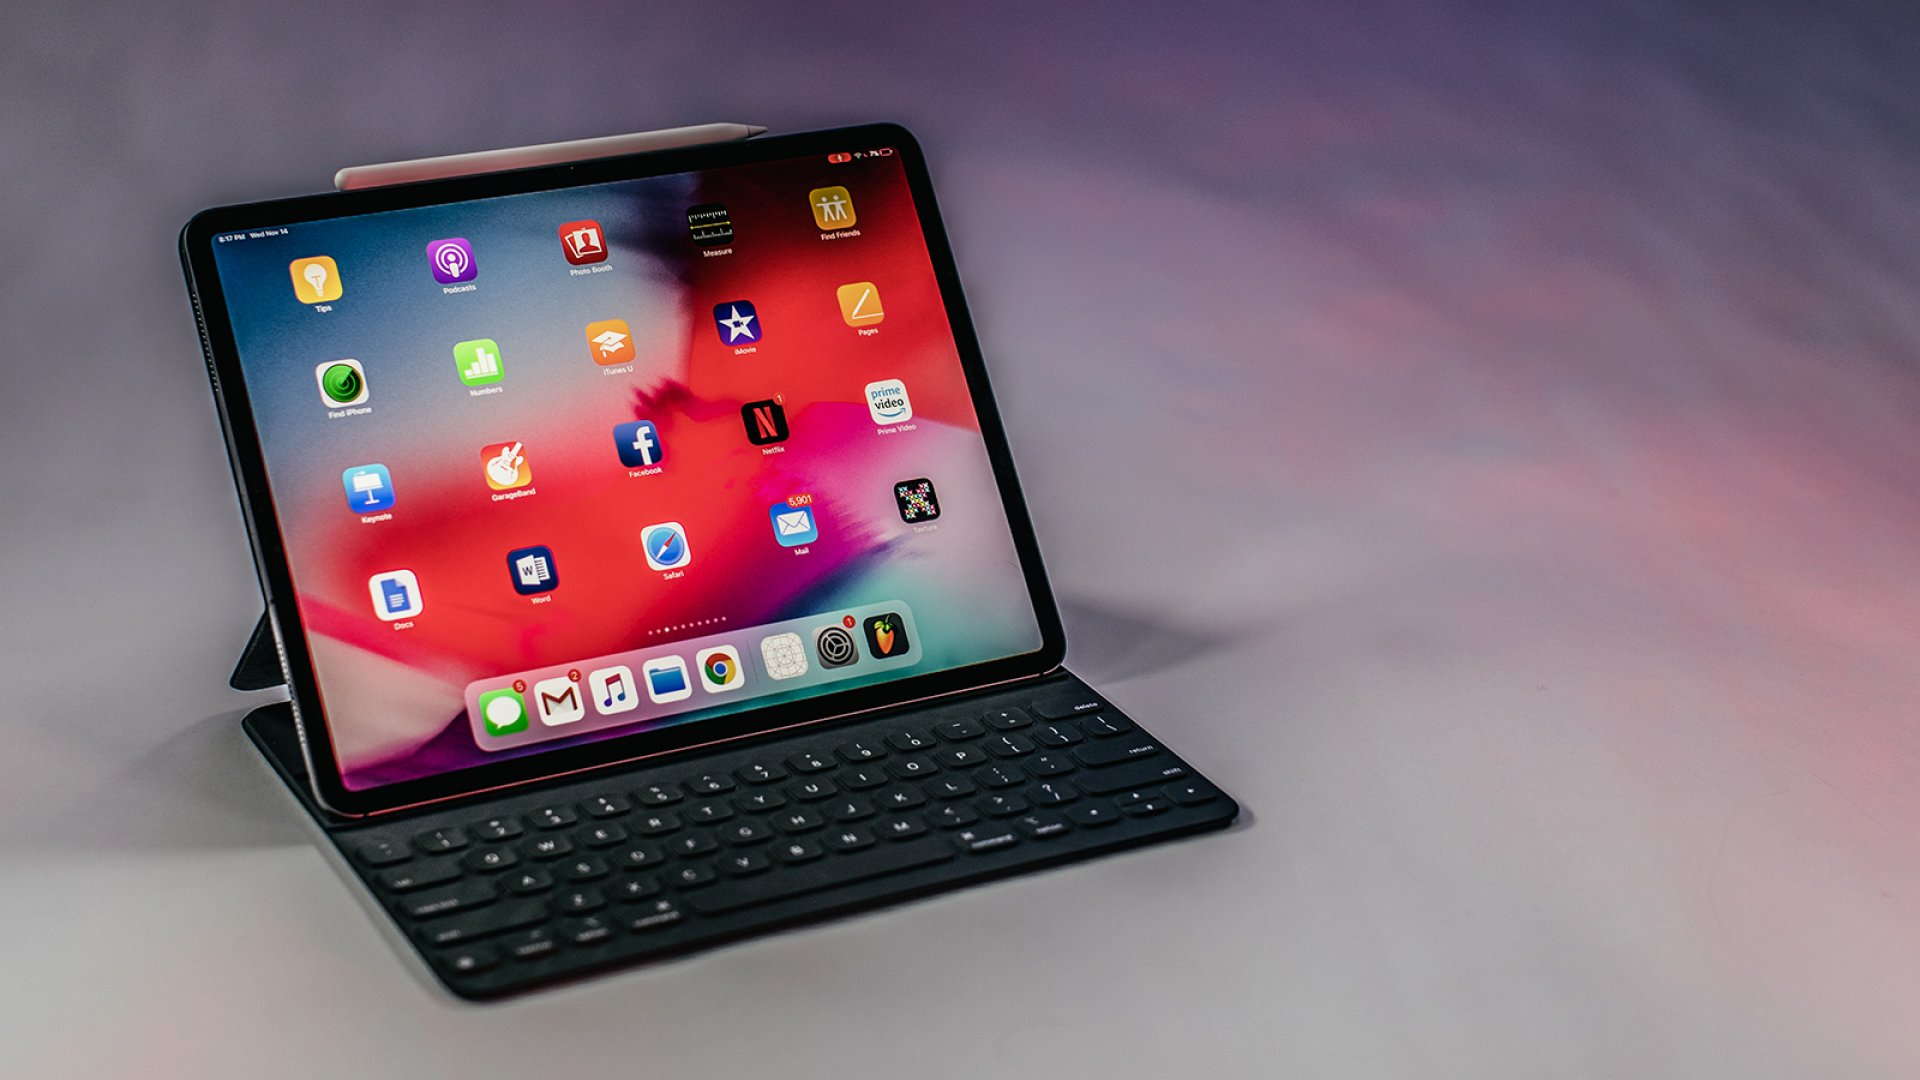 Apple has finally killed the laptop with its latest iPad Pro.